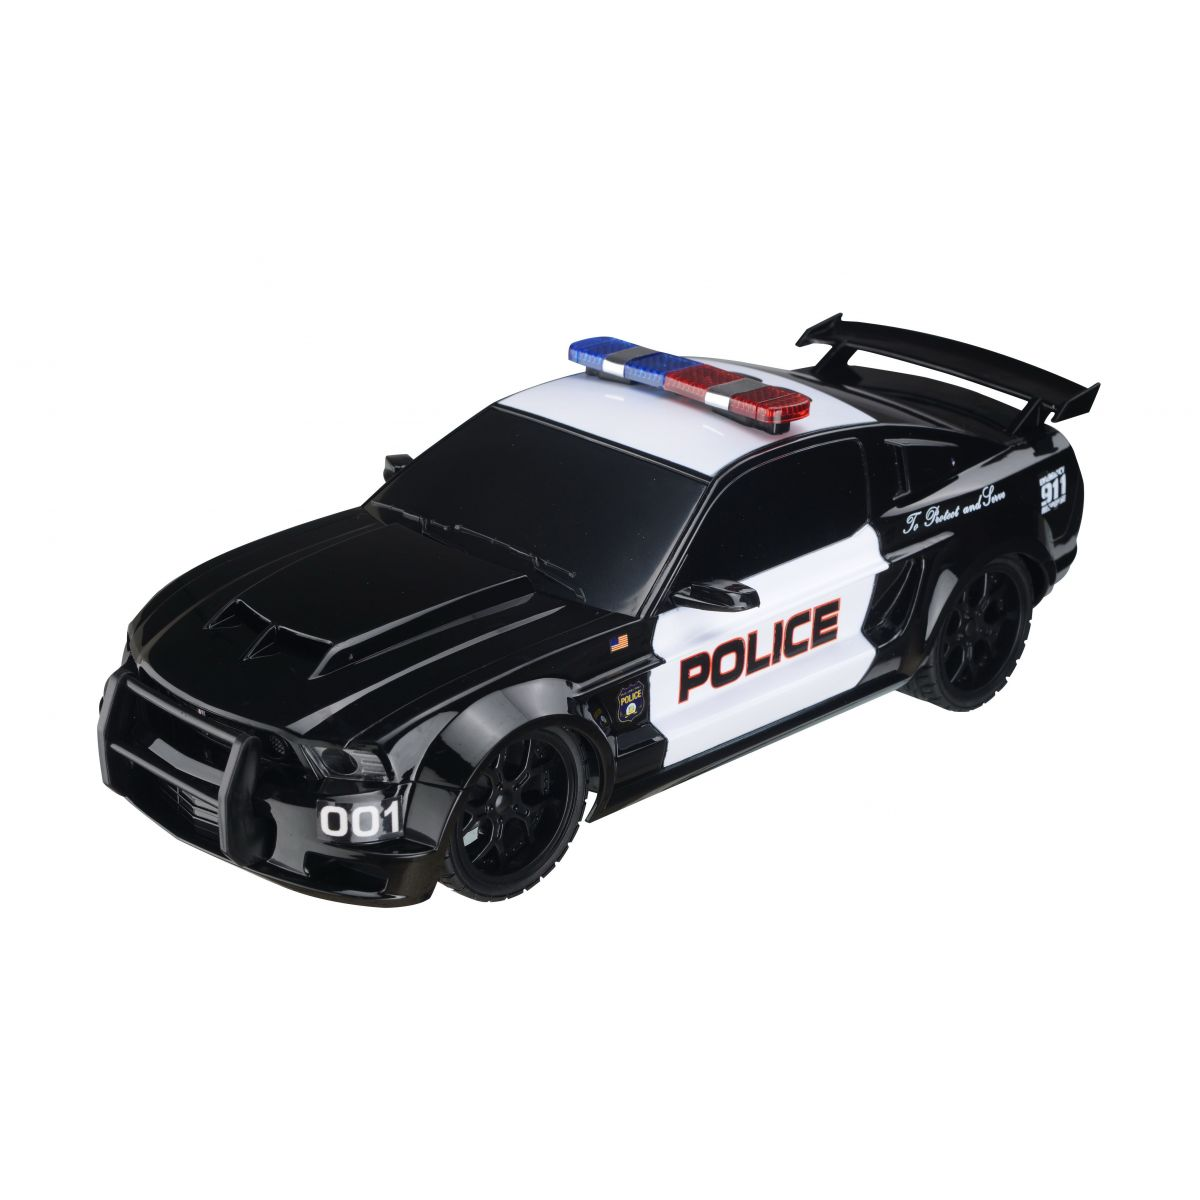 EP Line Policejní RC auto Ford Mustang 1:18 EPLINE